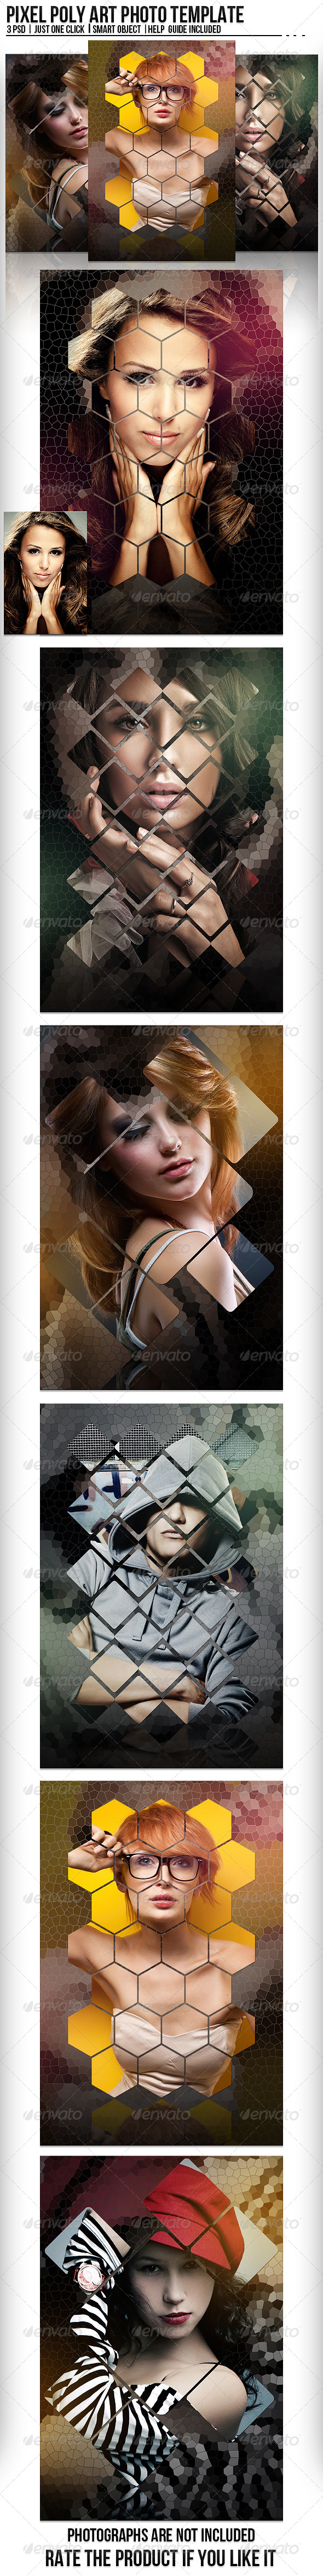 GraphicRiver Pixel Poly Art Photo Template 8353782